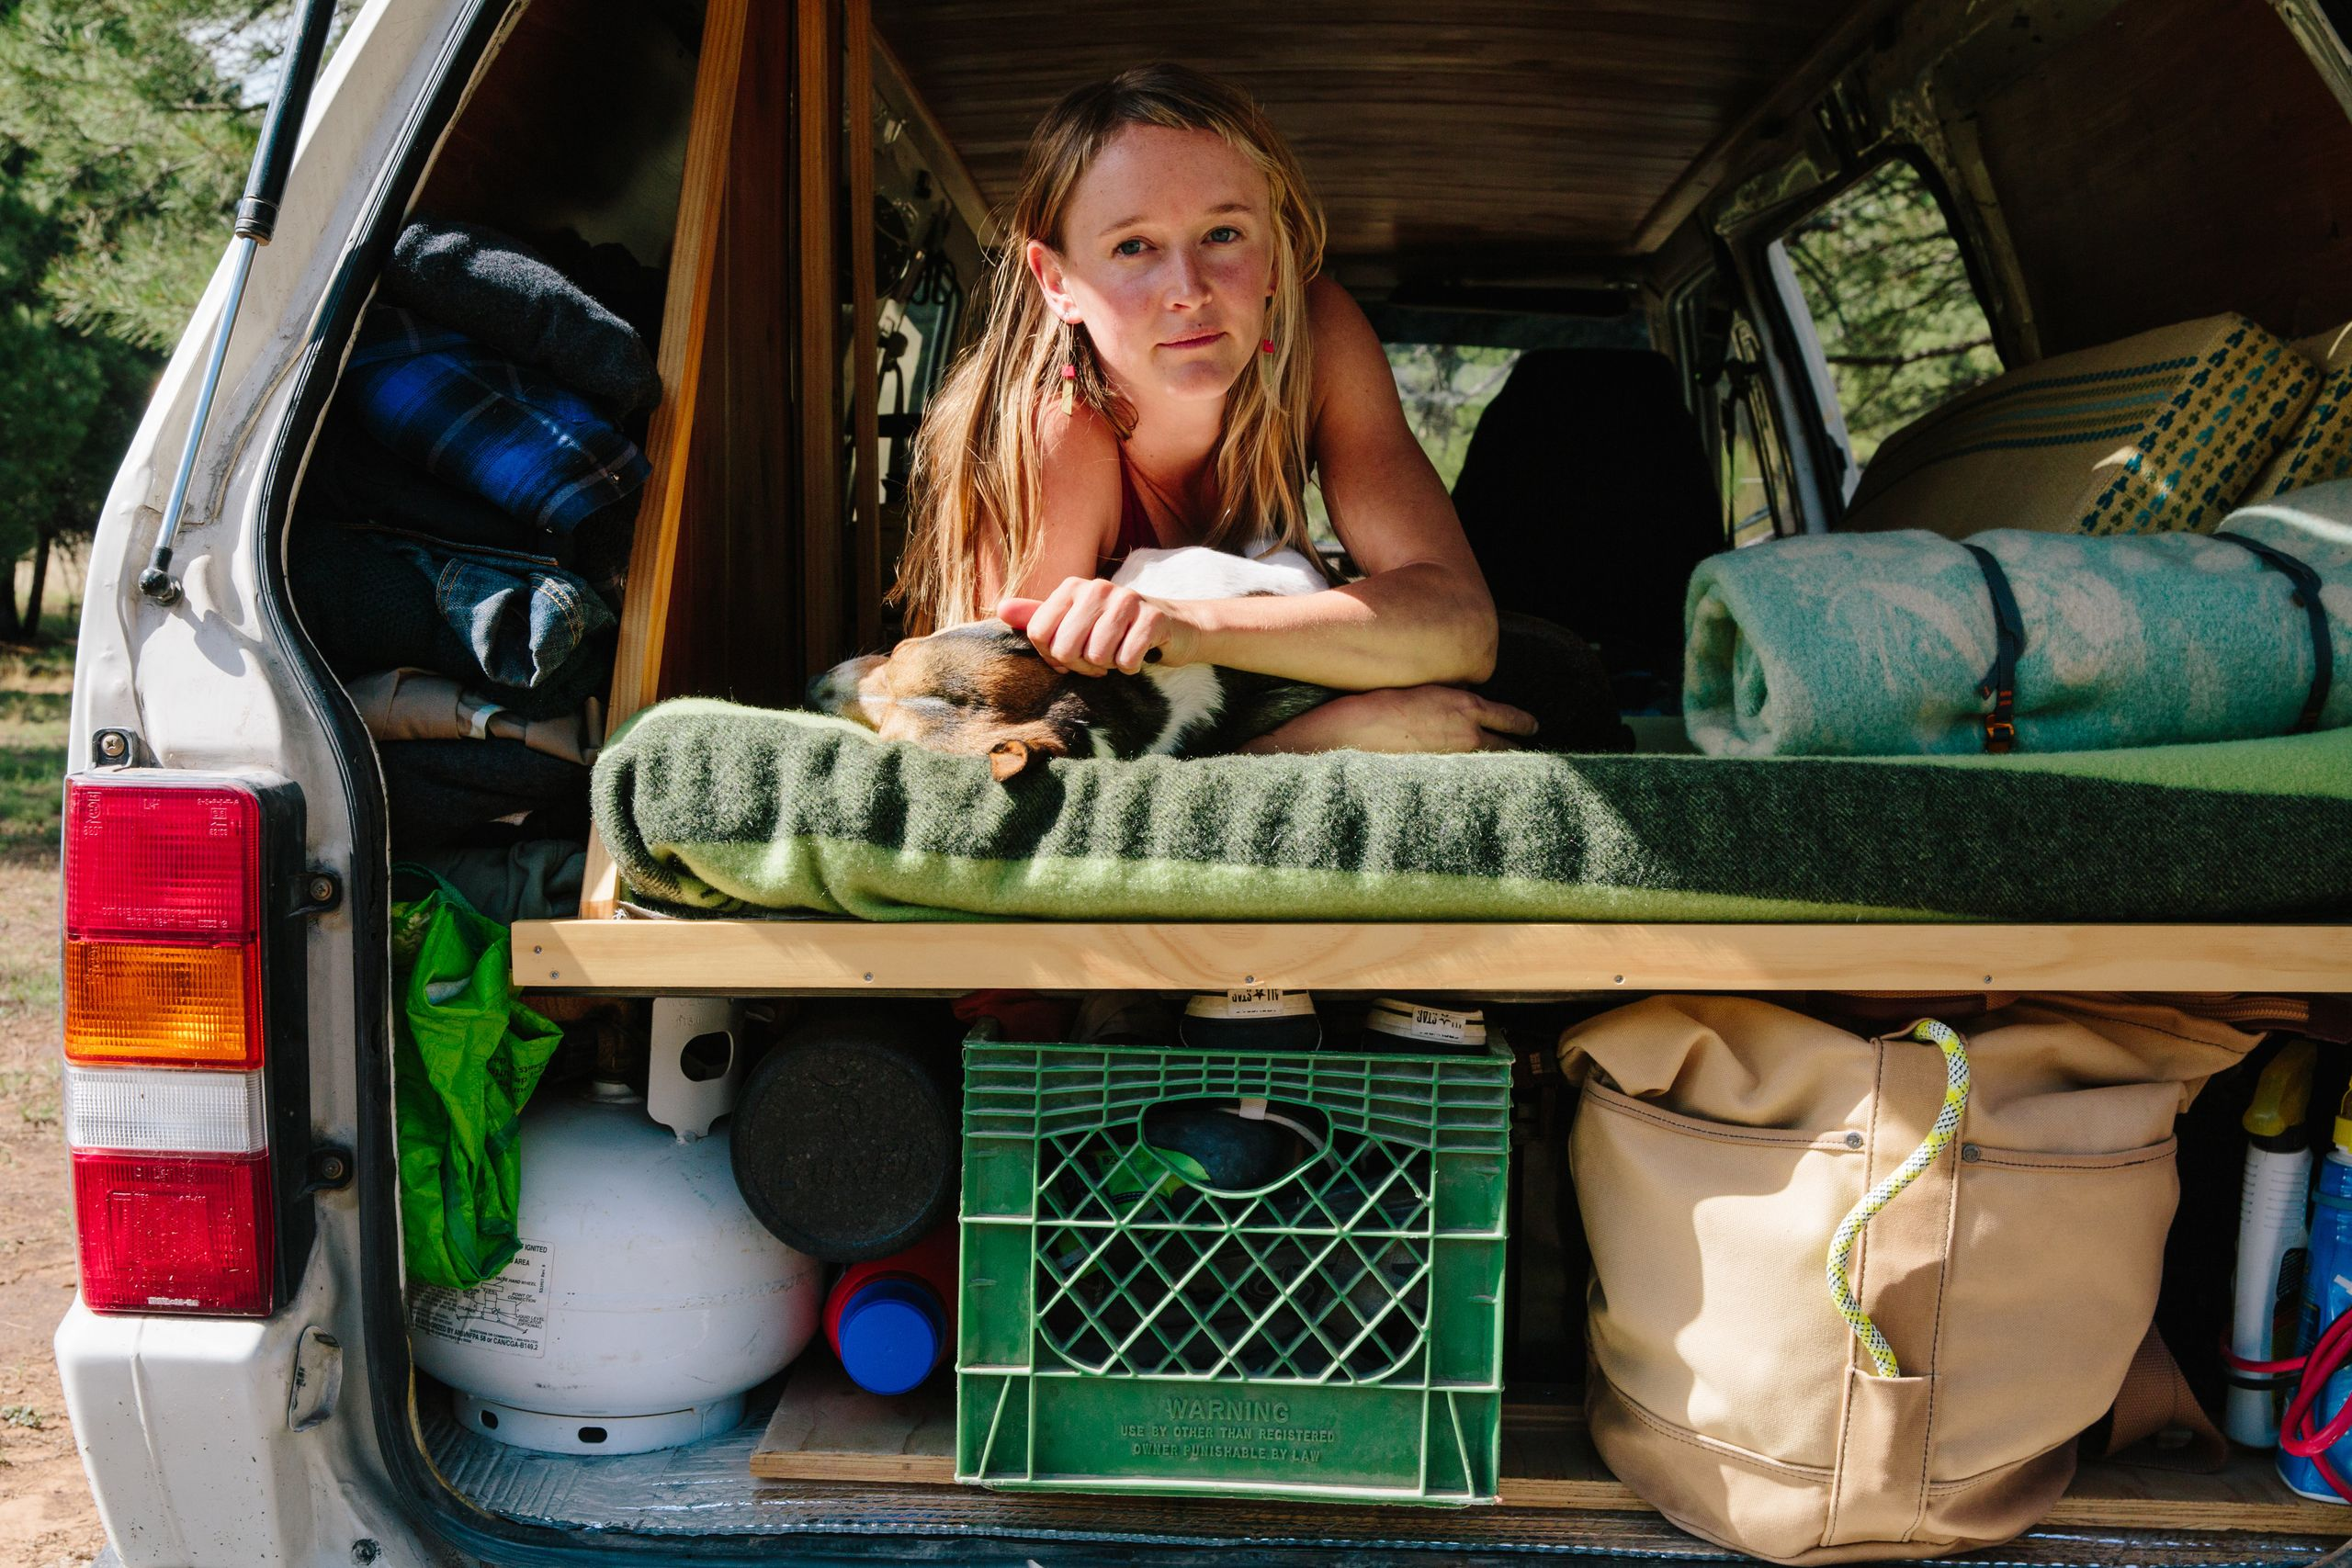 Laura Quinn in her van home in the Coconino National Forest outside Flagstaff, Arizona.